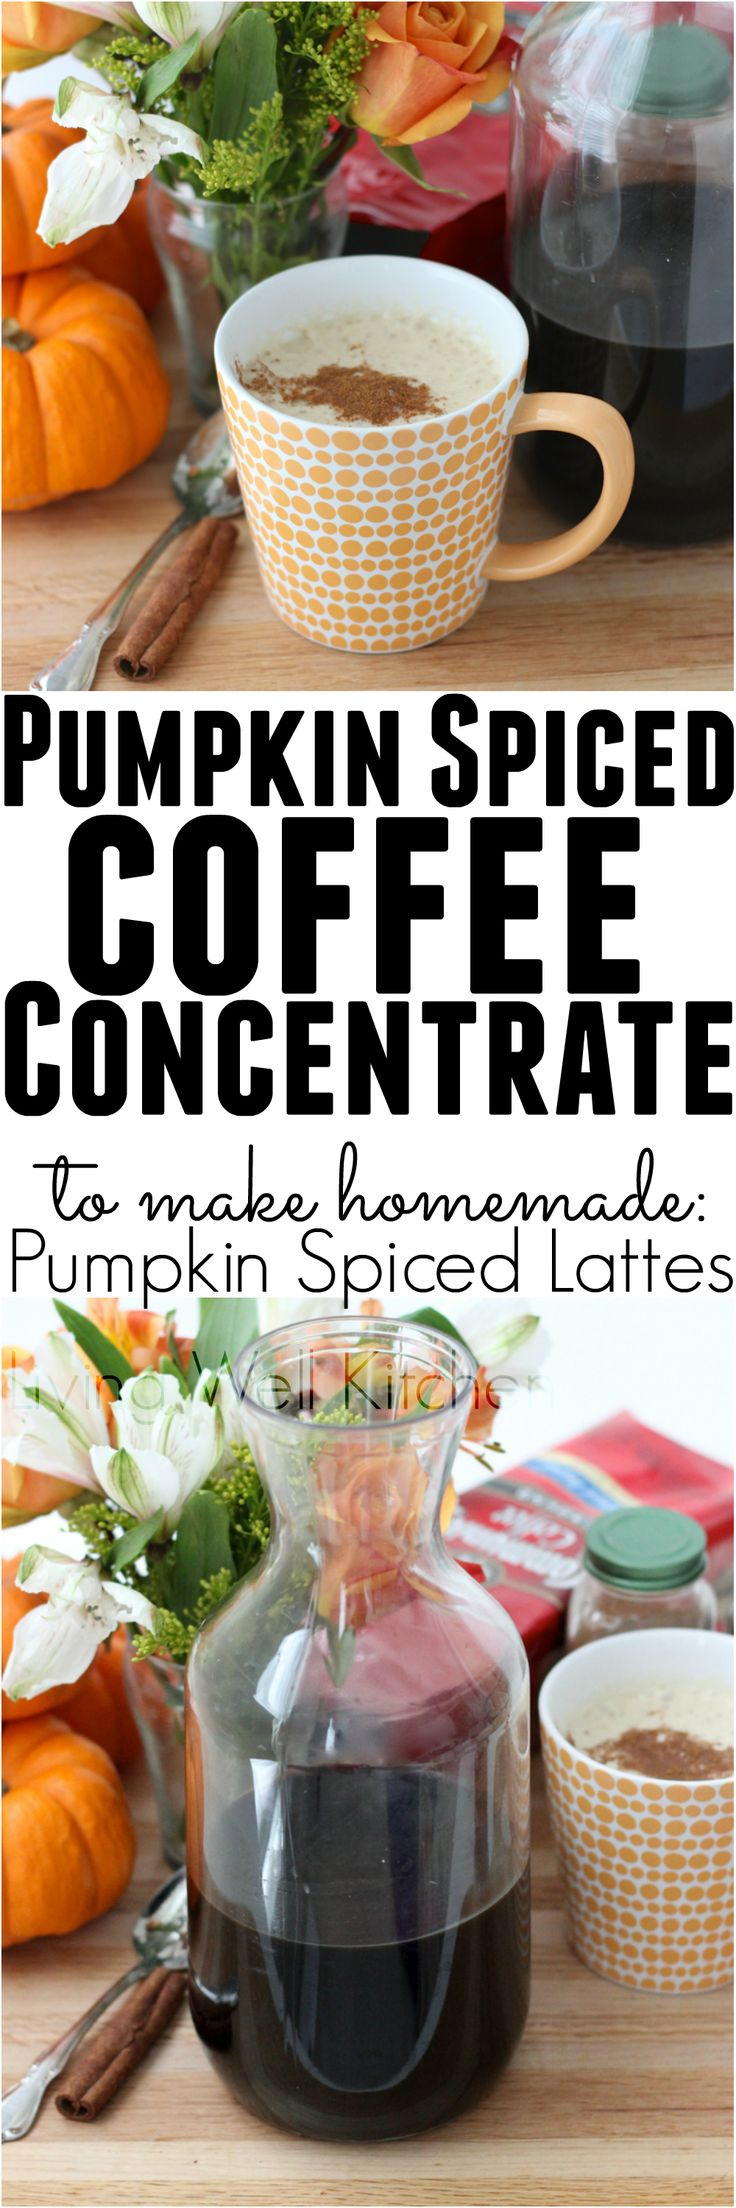 Pumpkin Spiced Coffee Concentrate is the best thing to ever happen to your fall morning. Great for making homemade Pumpkin Spiced Lattes!